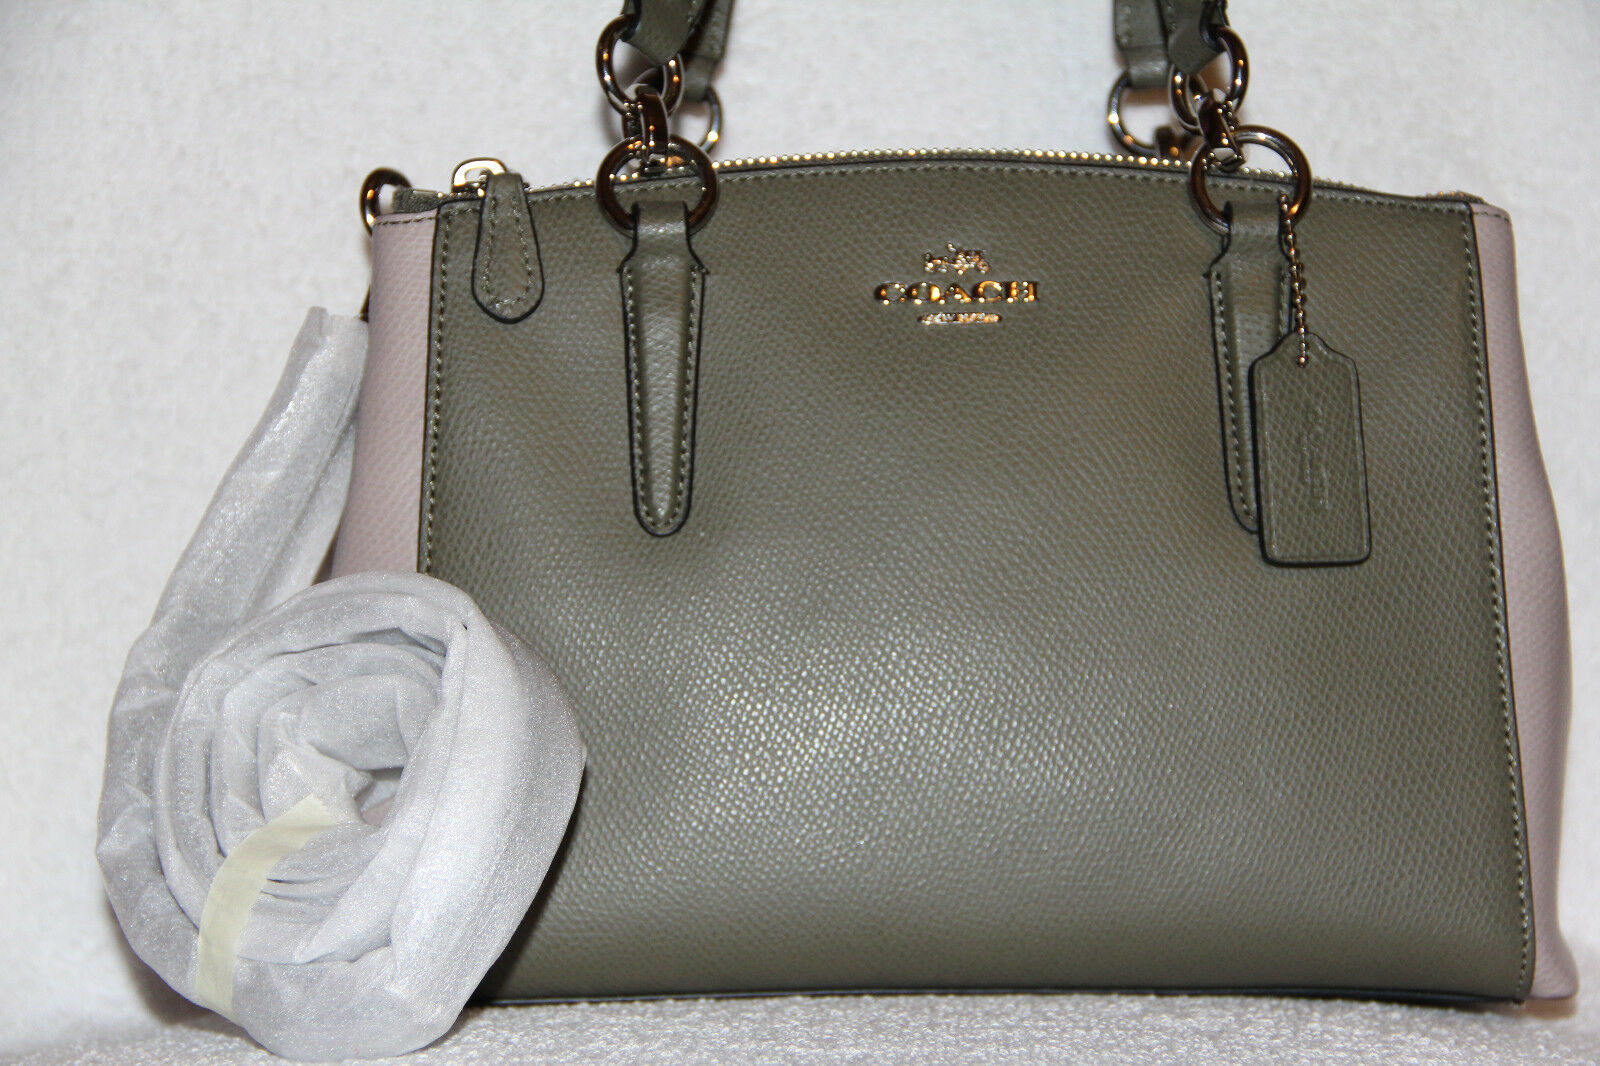 2d92a011a1 Coach Mini Christie Carryall in Colorblock Leather Satchel 57266m ...